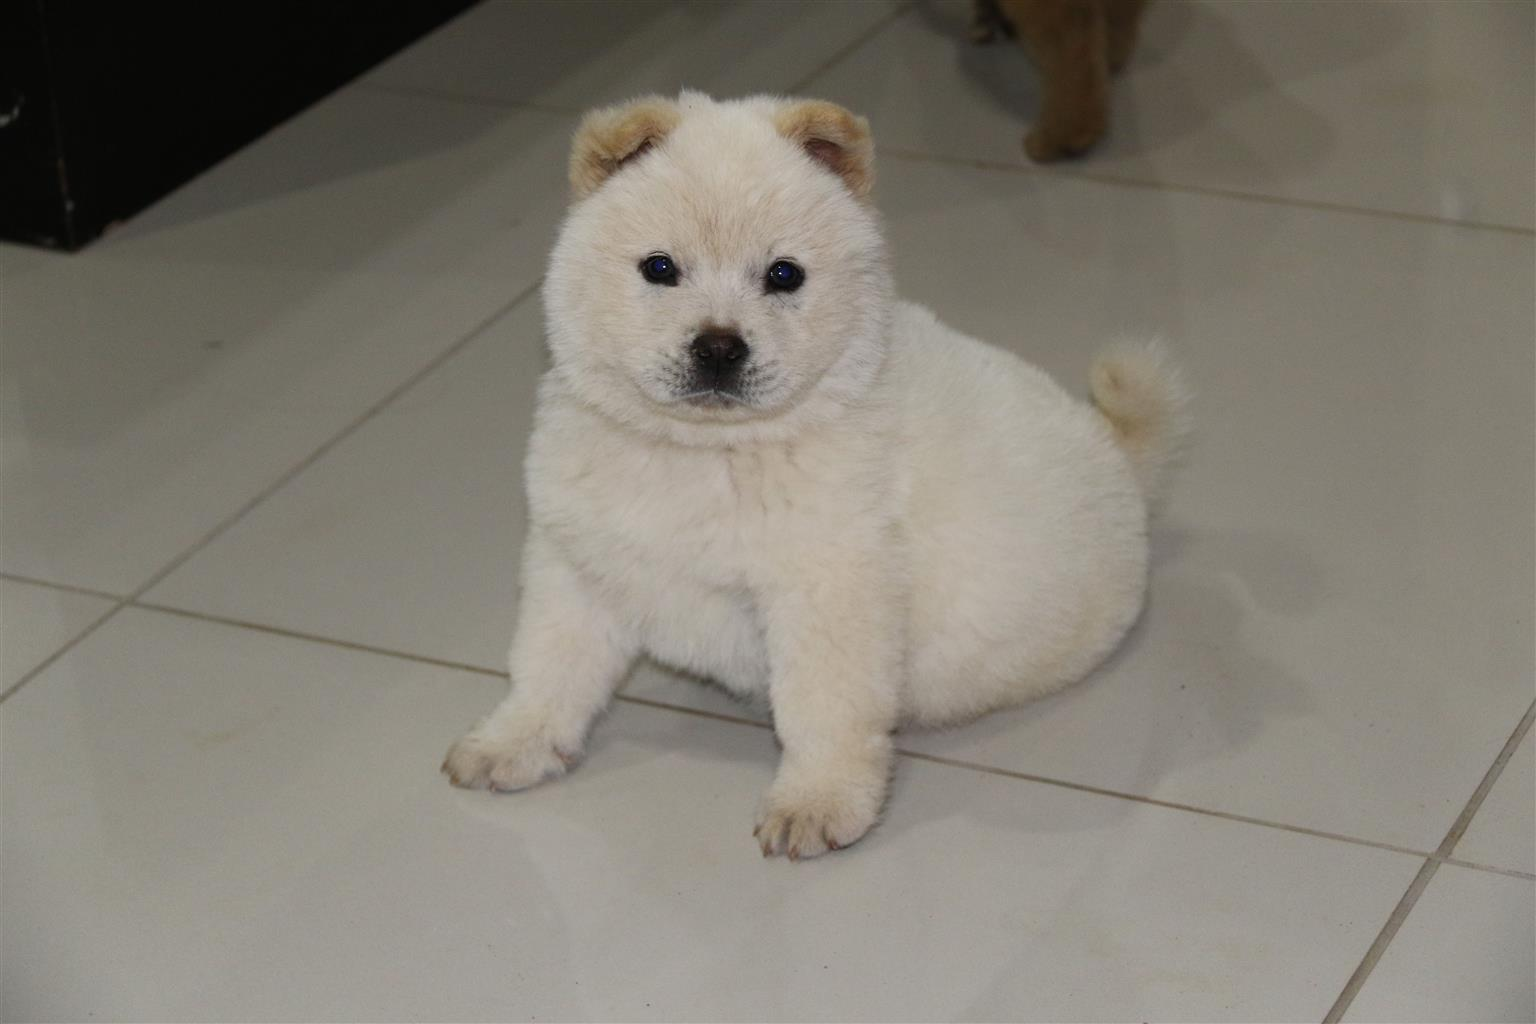 Chow Chow puppies for sale R2000.00 each negotiable 6weeks old (vaccinated)